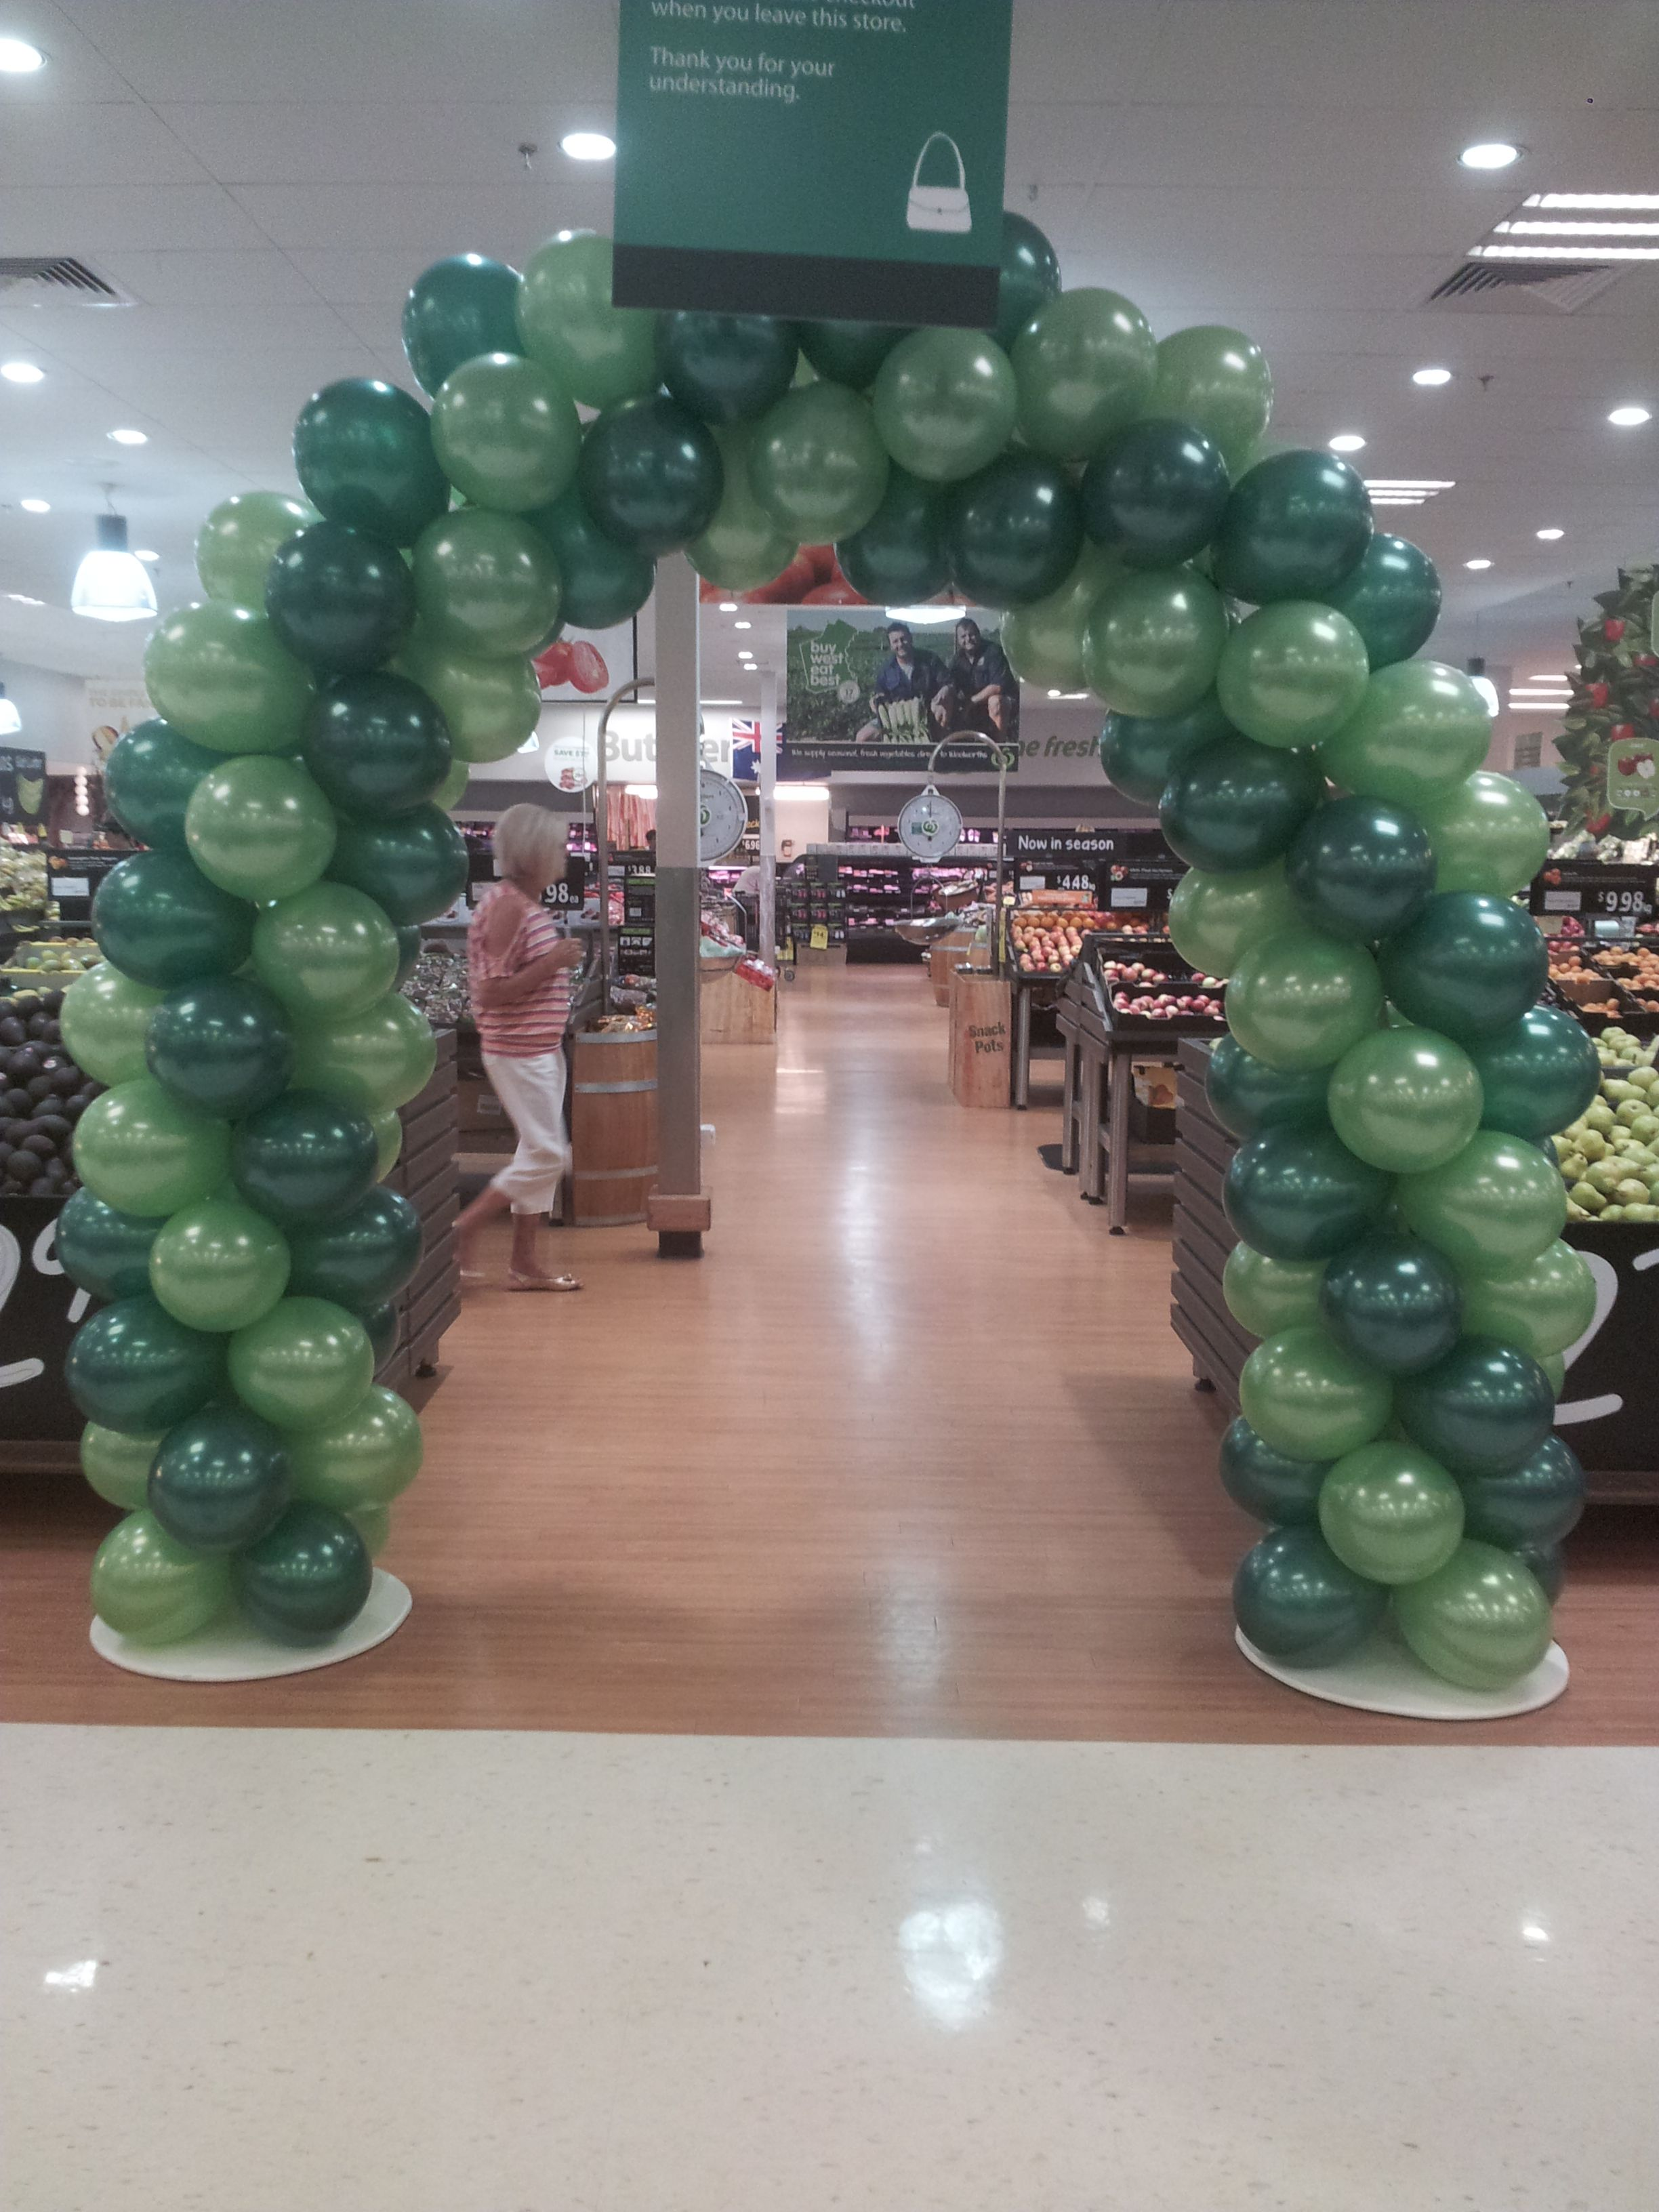 Woolworth's Arch